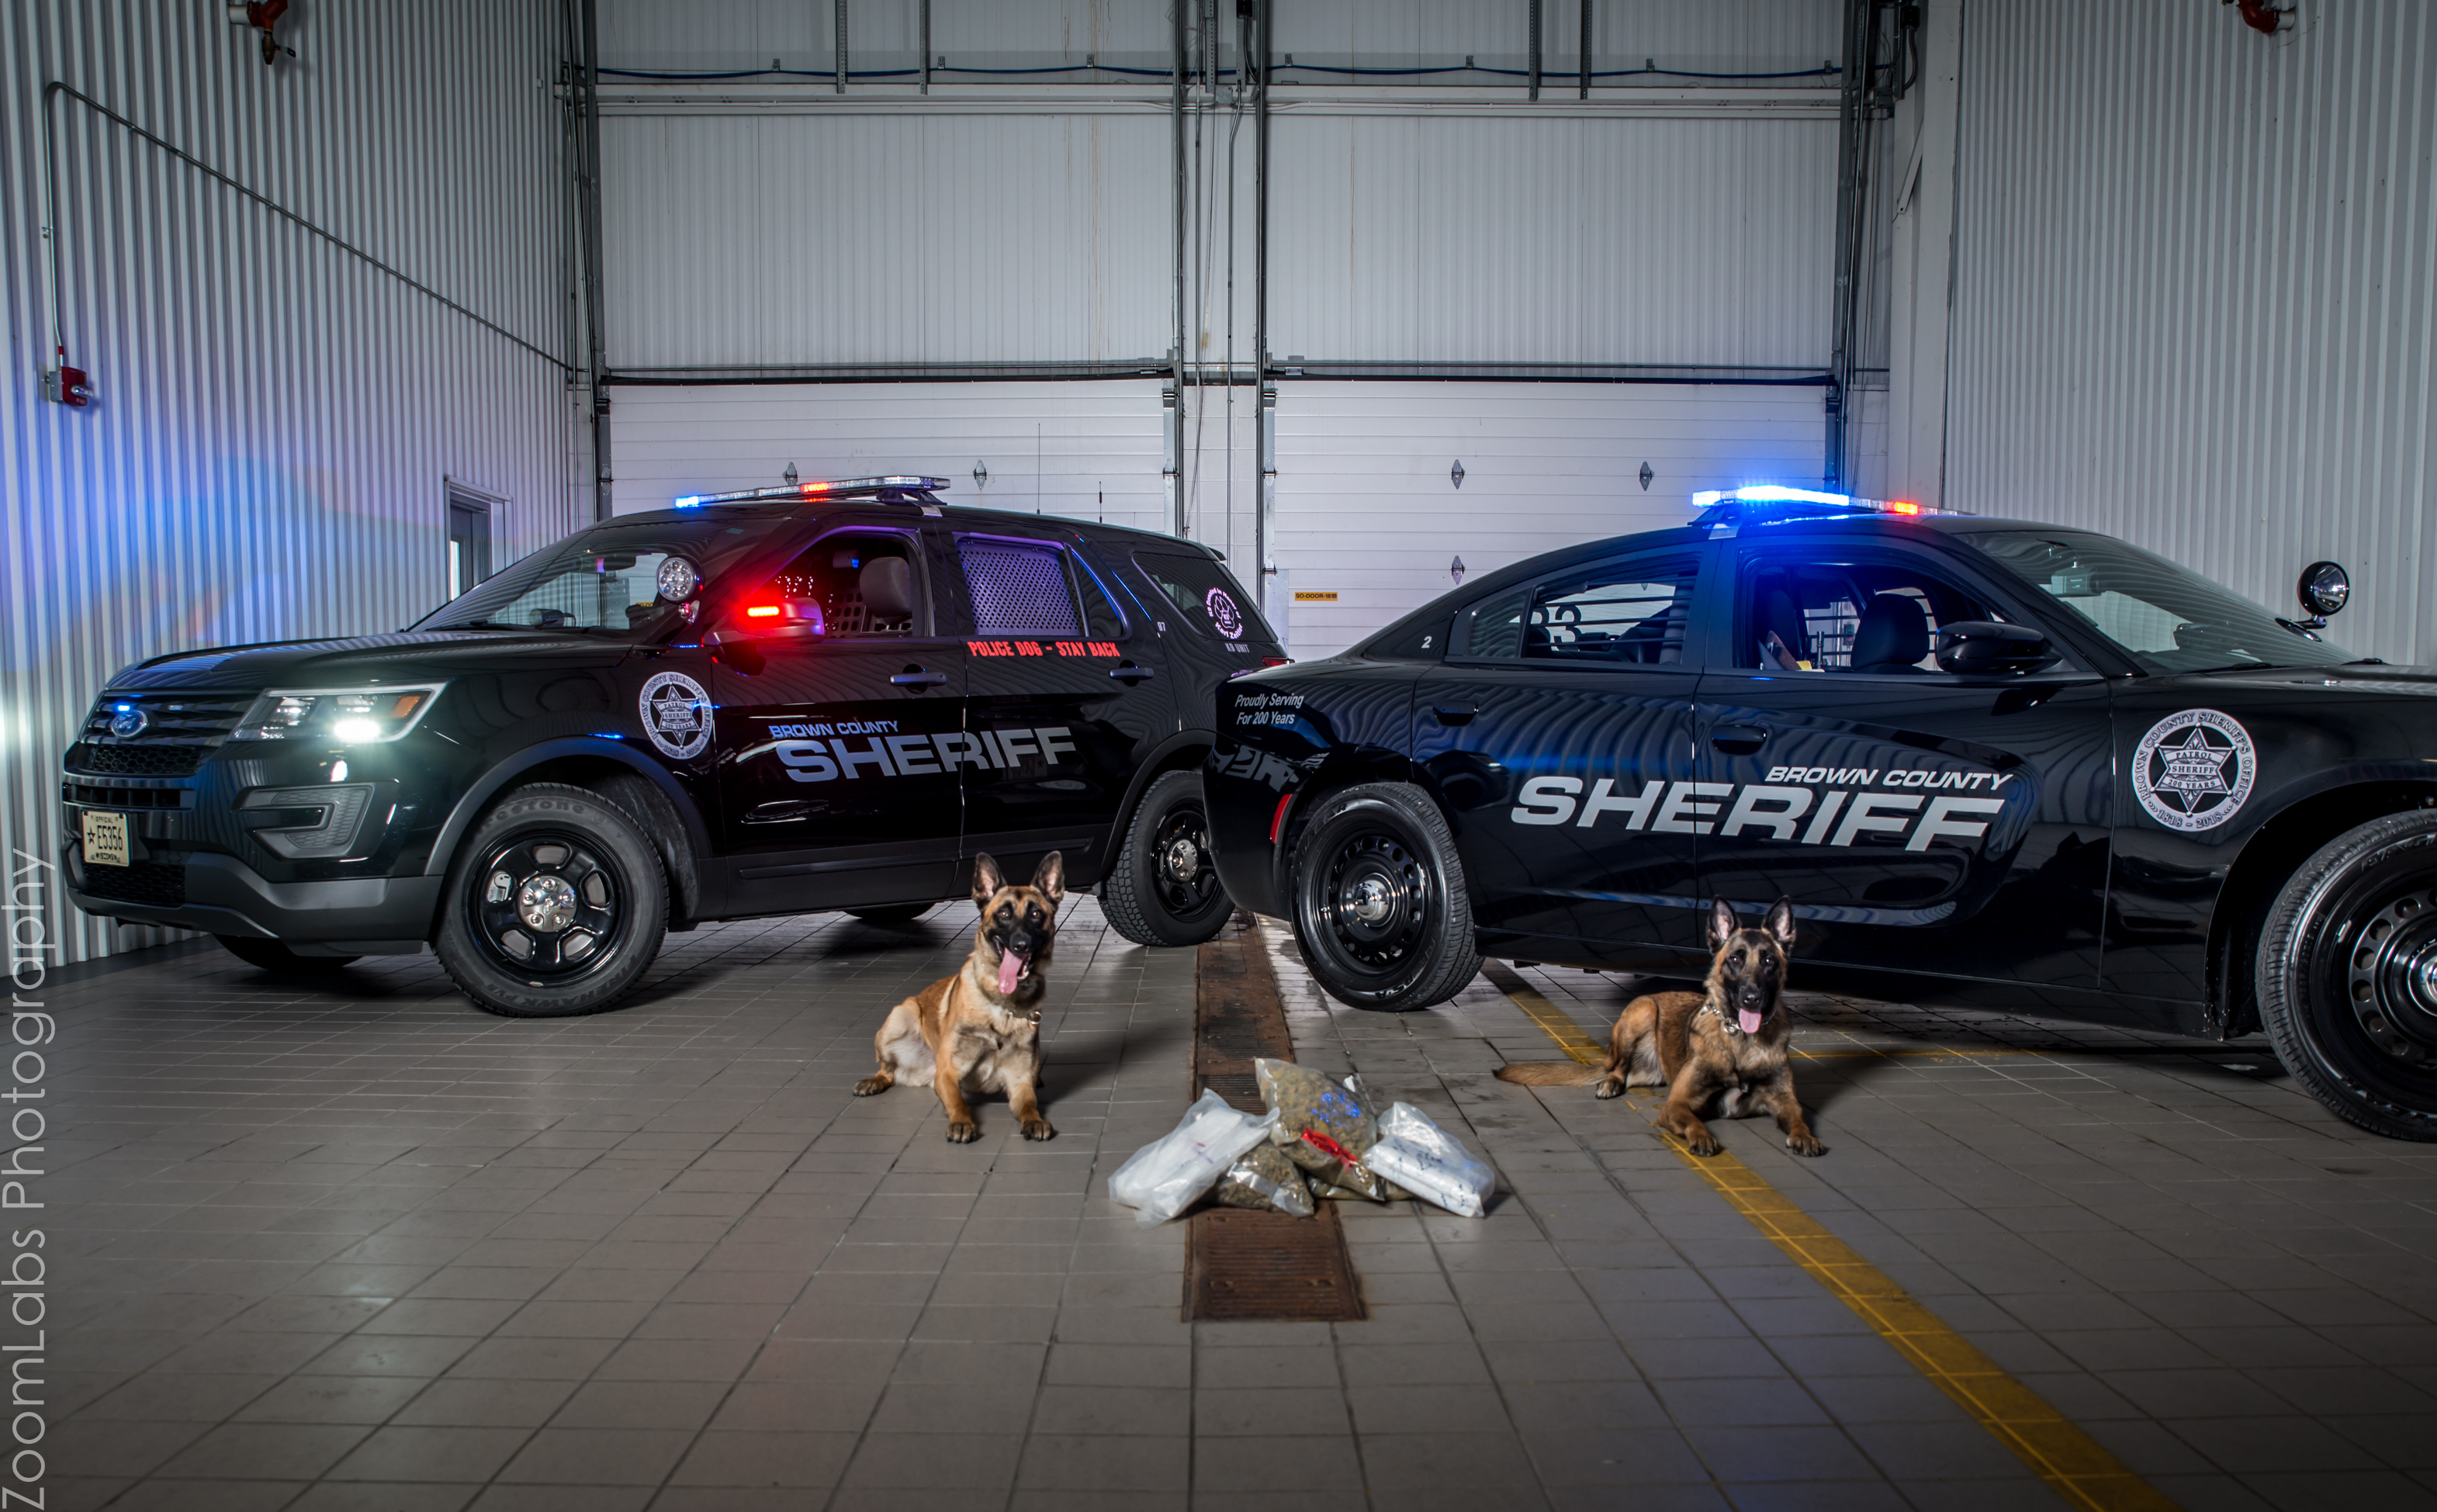 K9s with drugs in front of squad car